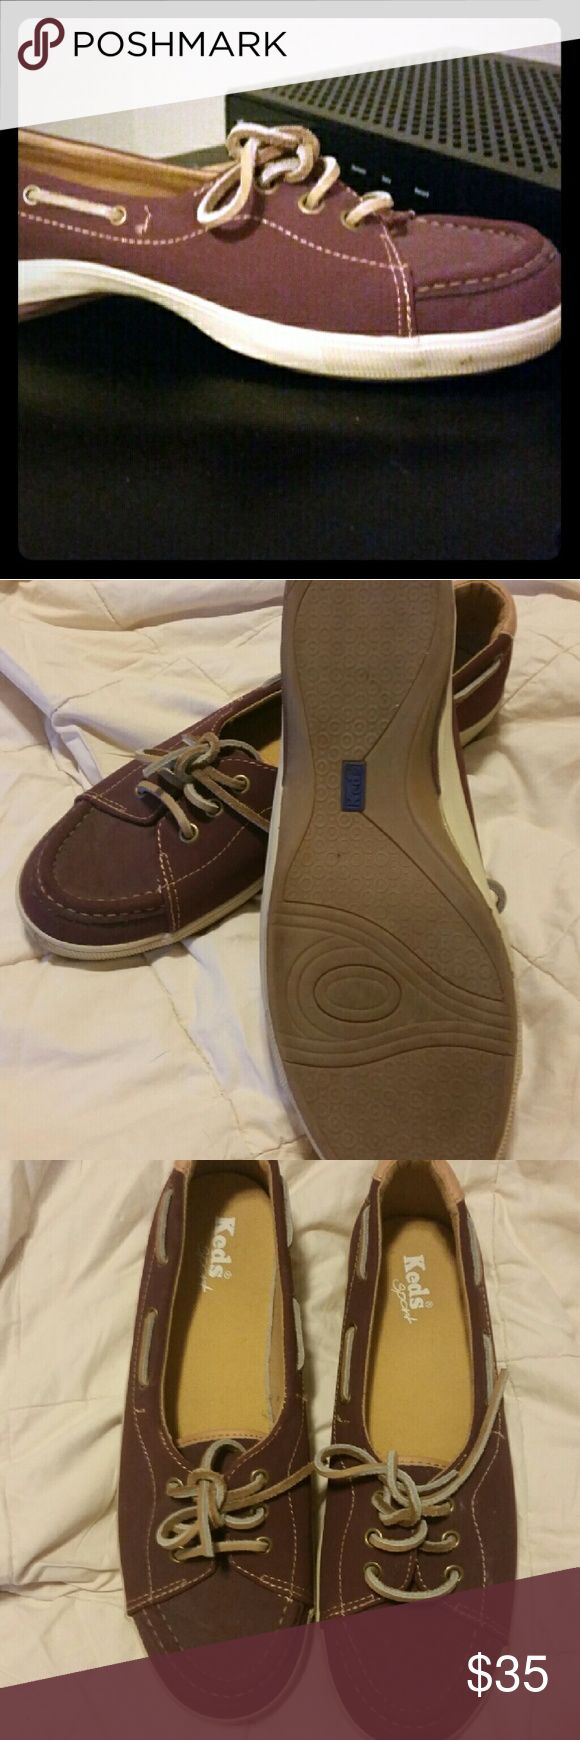 Keds dock shoes Rust burgundy colored keds never been worn dock shoes. Keds Shoes Sneakers